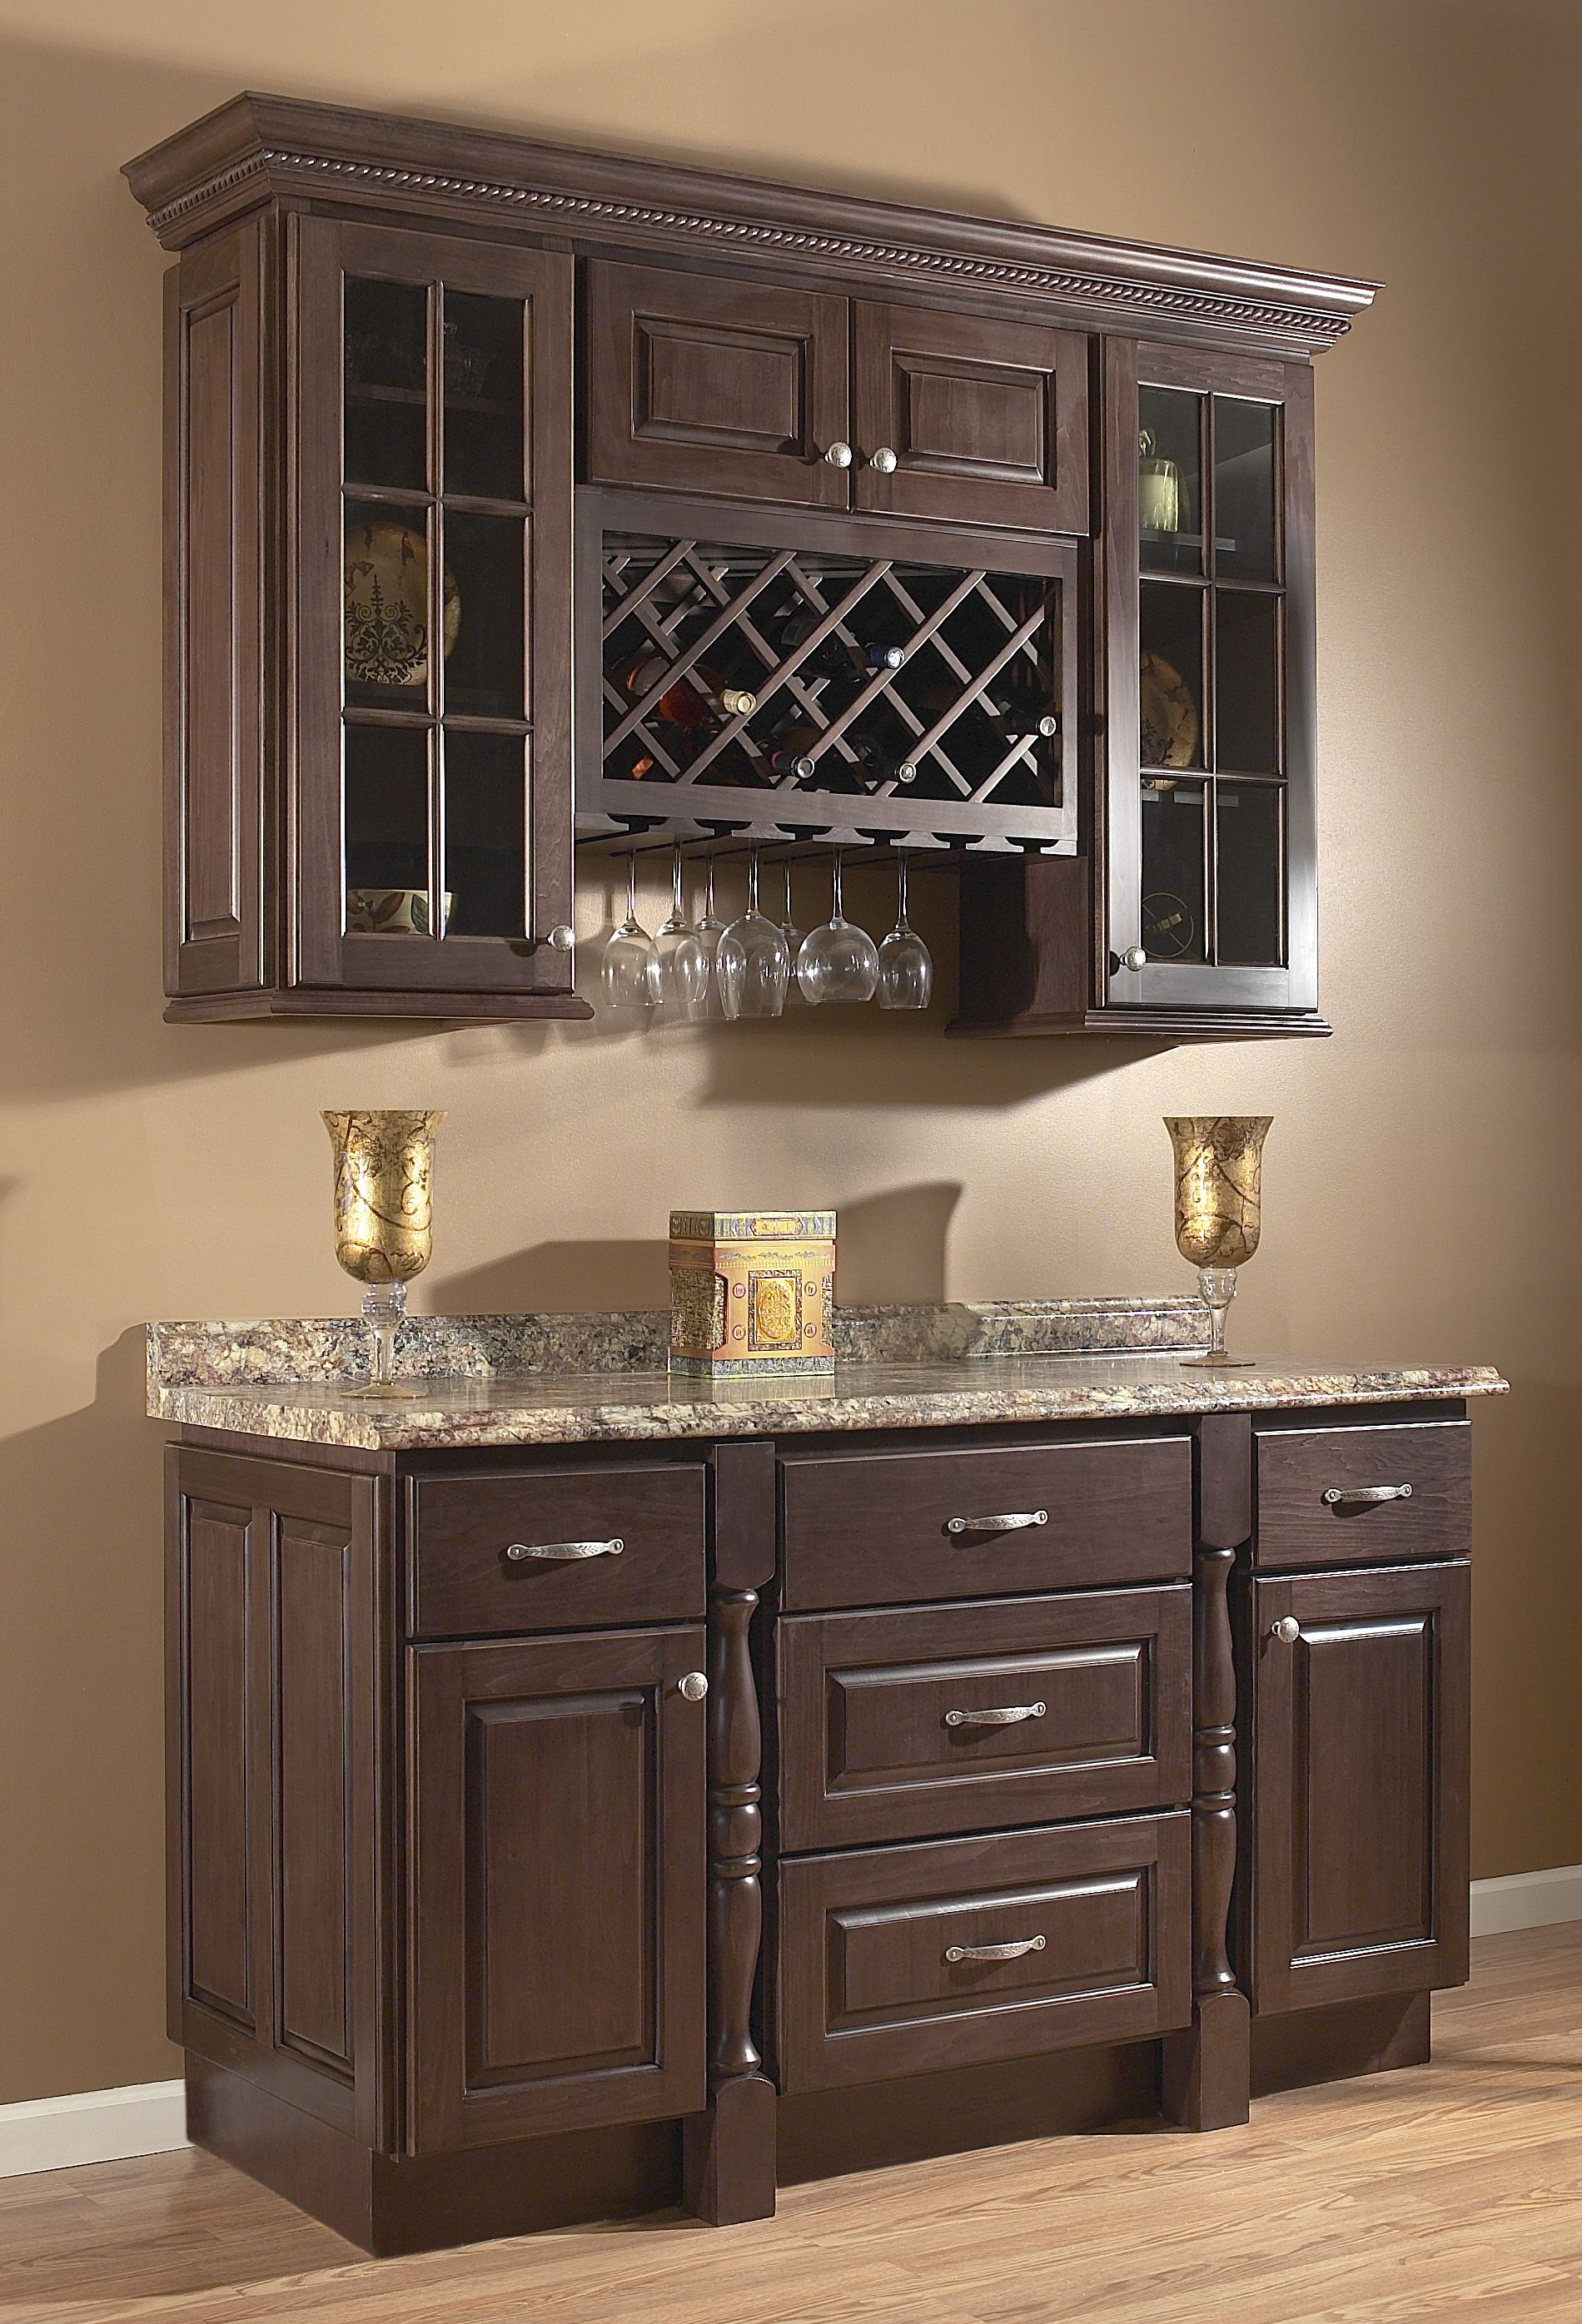 Traditional Chocolate Kitchen Cabinetry Sold At Innovations Luxury Kitchen Cabinets Kitchen Cabinet Layout Simple Kitchen Cabinets